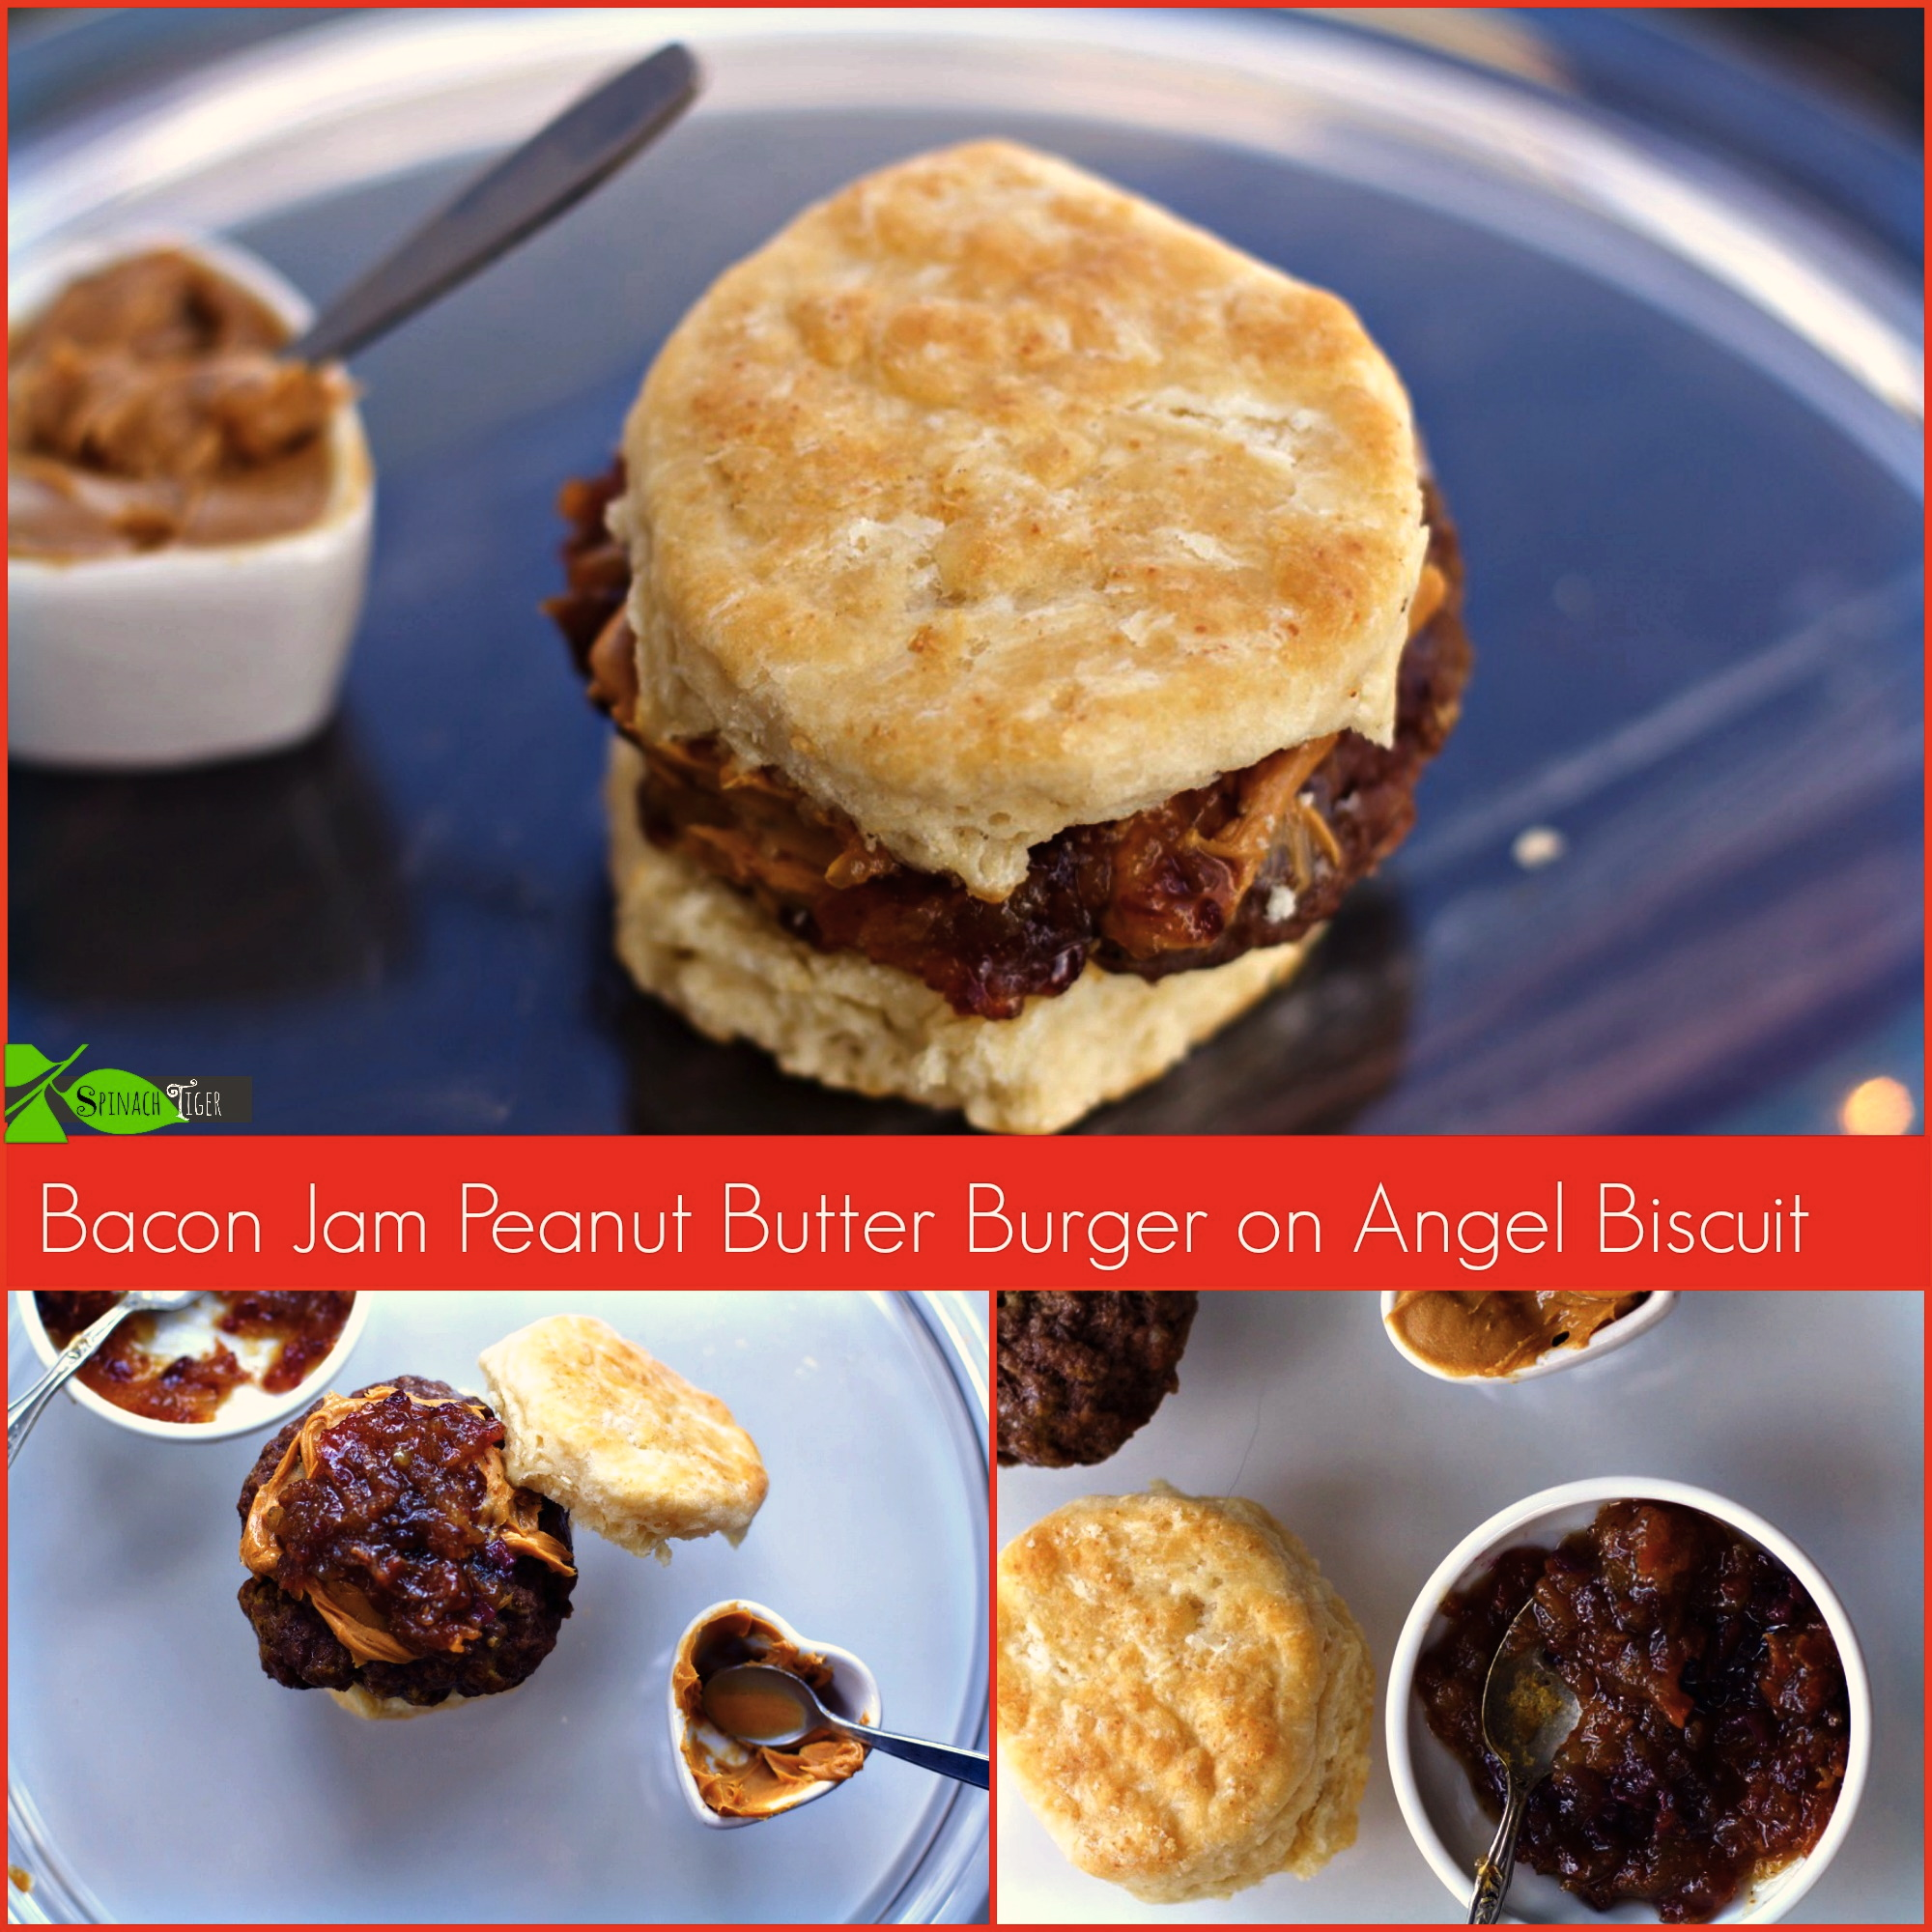 Bacon Jam Peanut Butter Burger on Biscuit by Angela Roberts